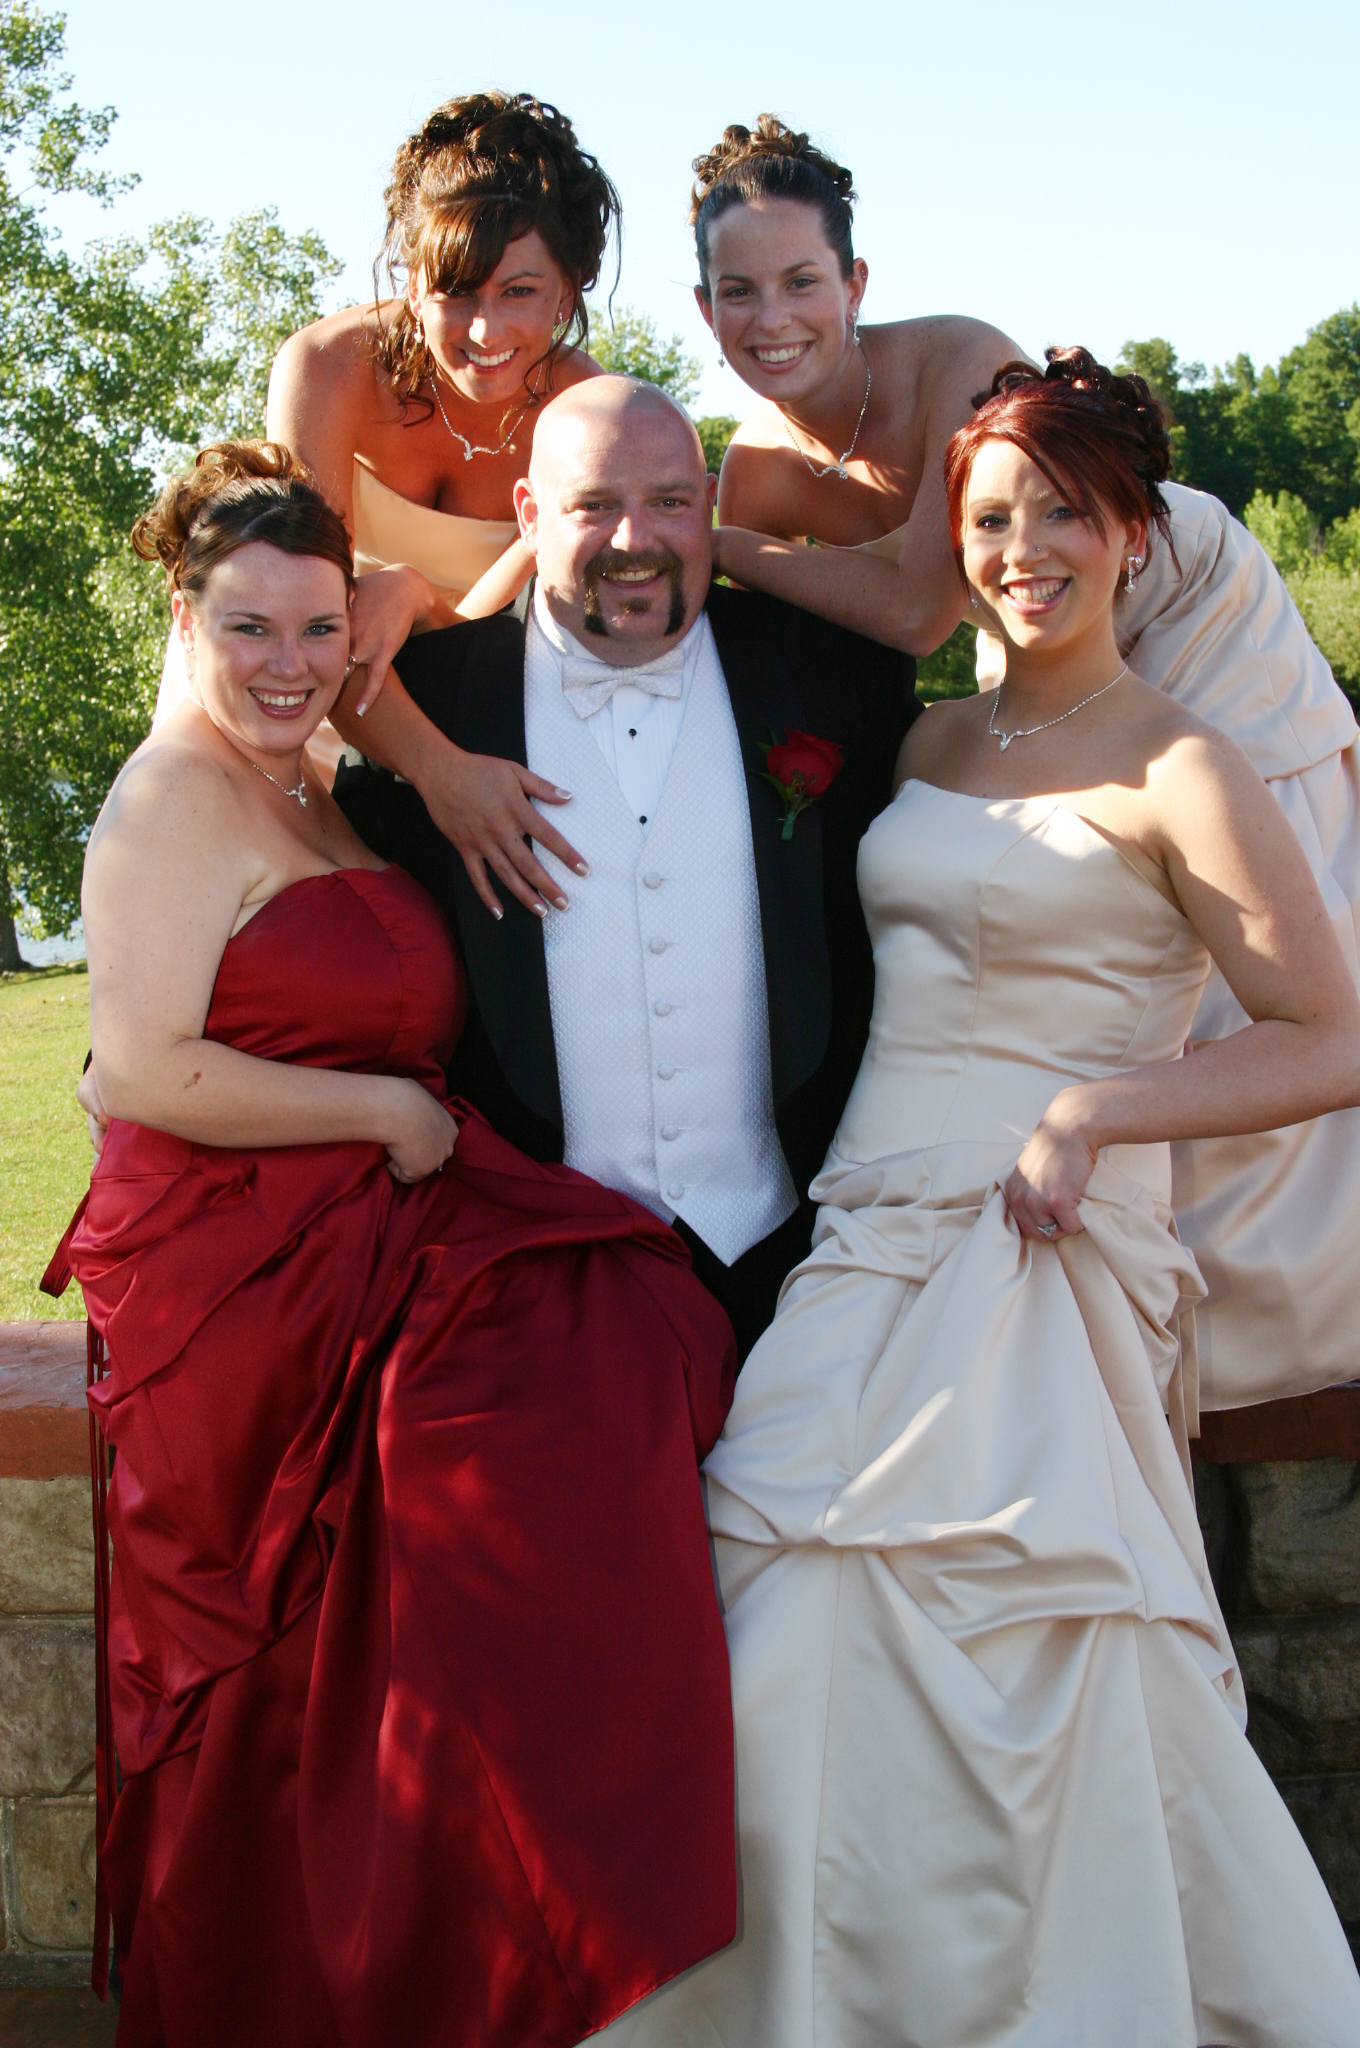 Bridesmaids, Bridesmaids Dresses, Fashion, Groom, Melissa anne photography